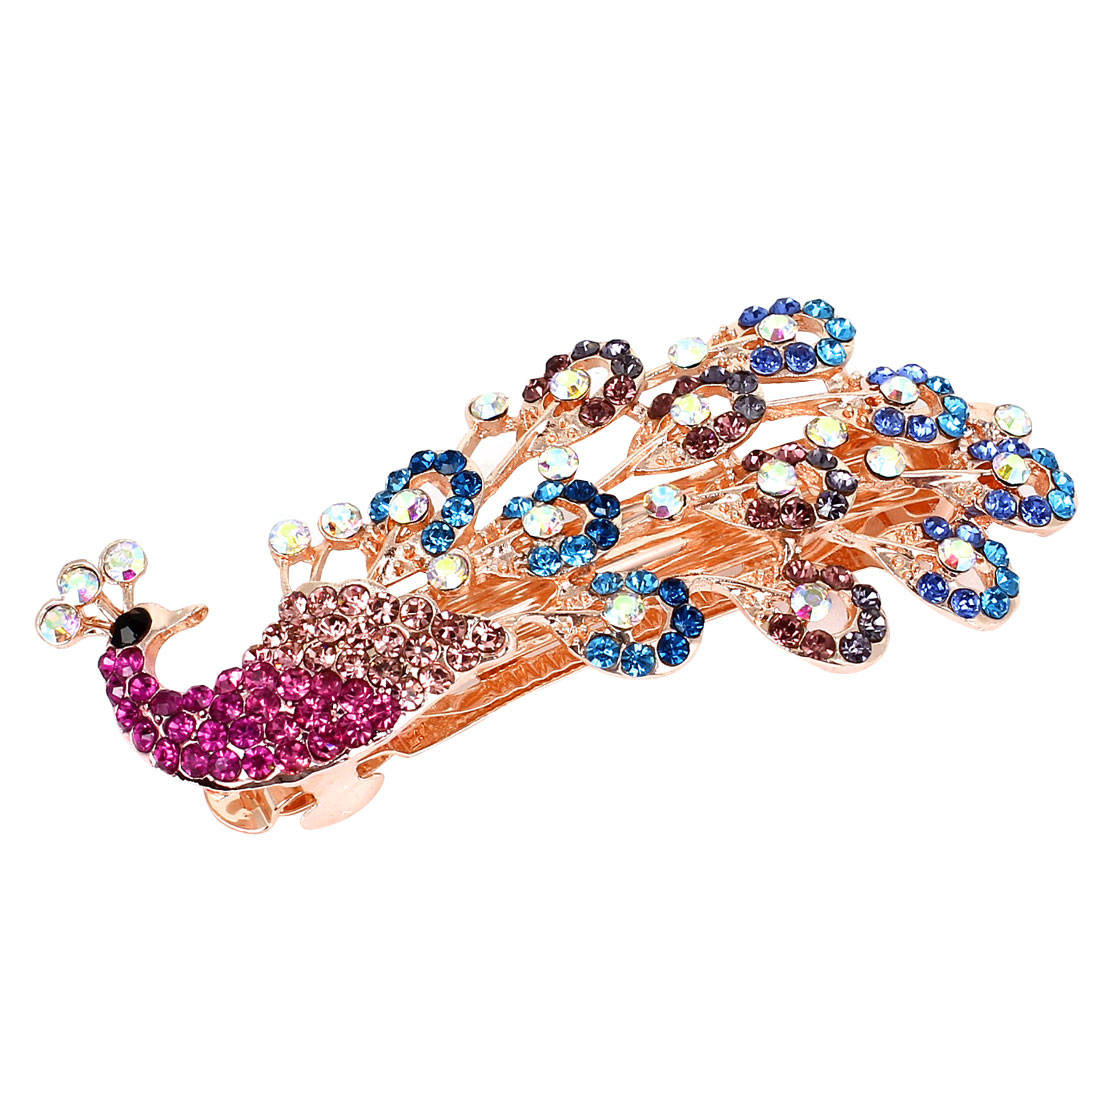 Glittery Rhinestone Decor Peacock Style French Hair Clip Barrette Purple Blue